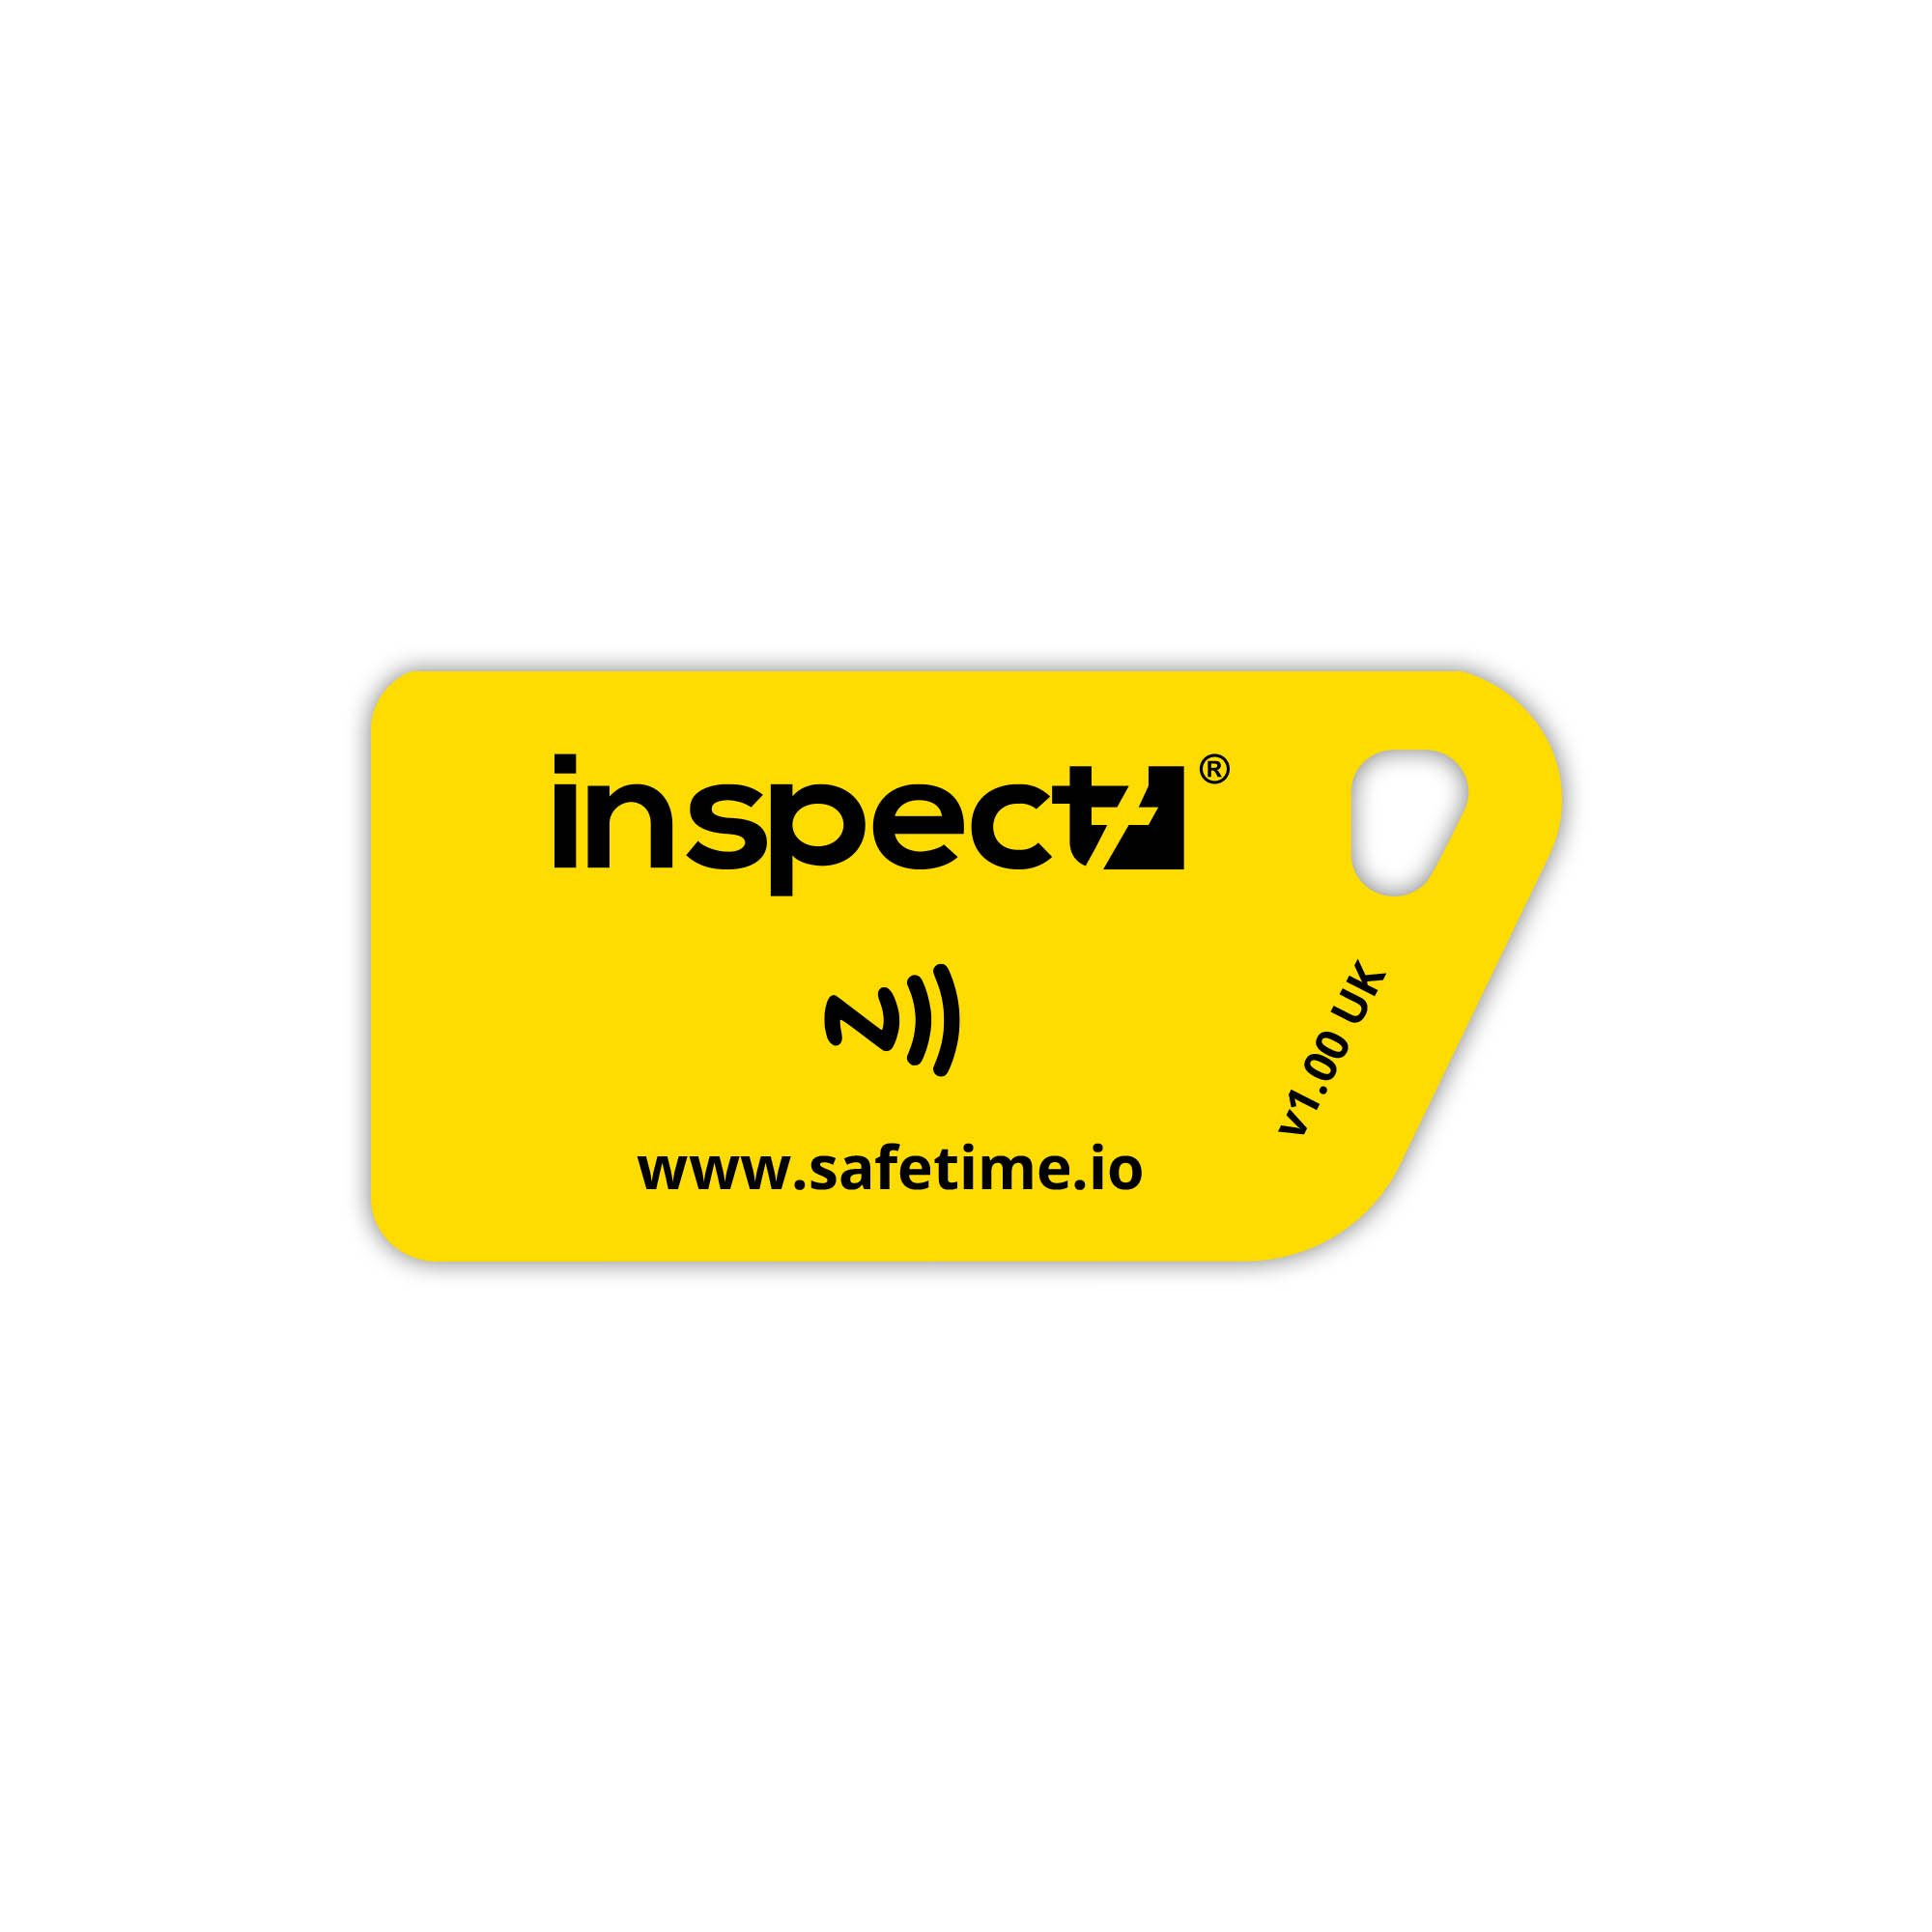 Inspect7 M Label (Pack of 10)